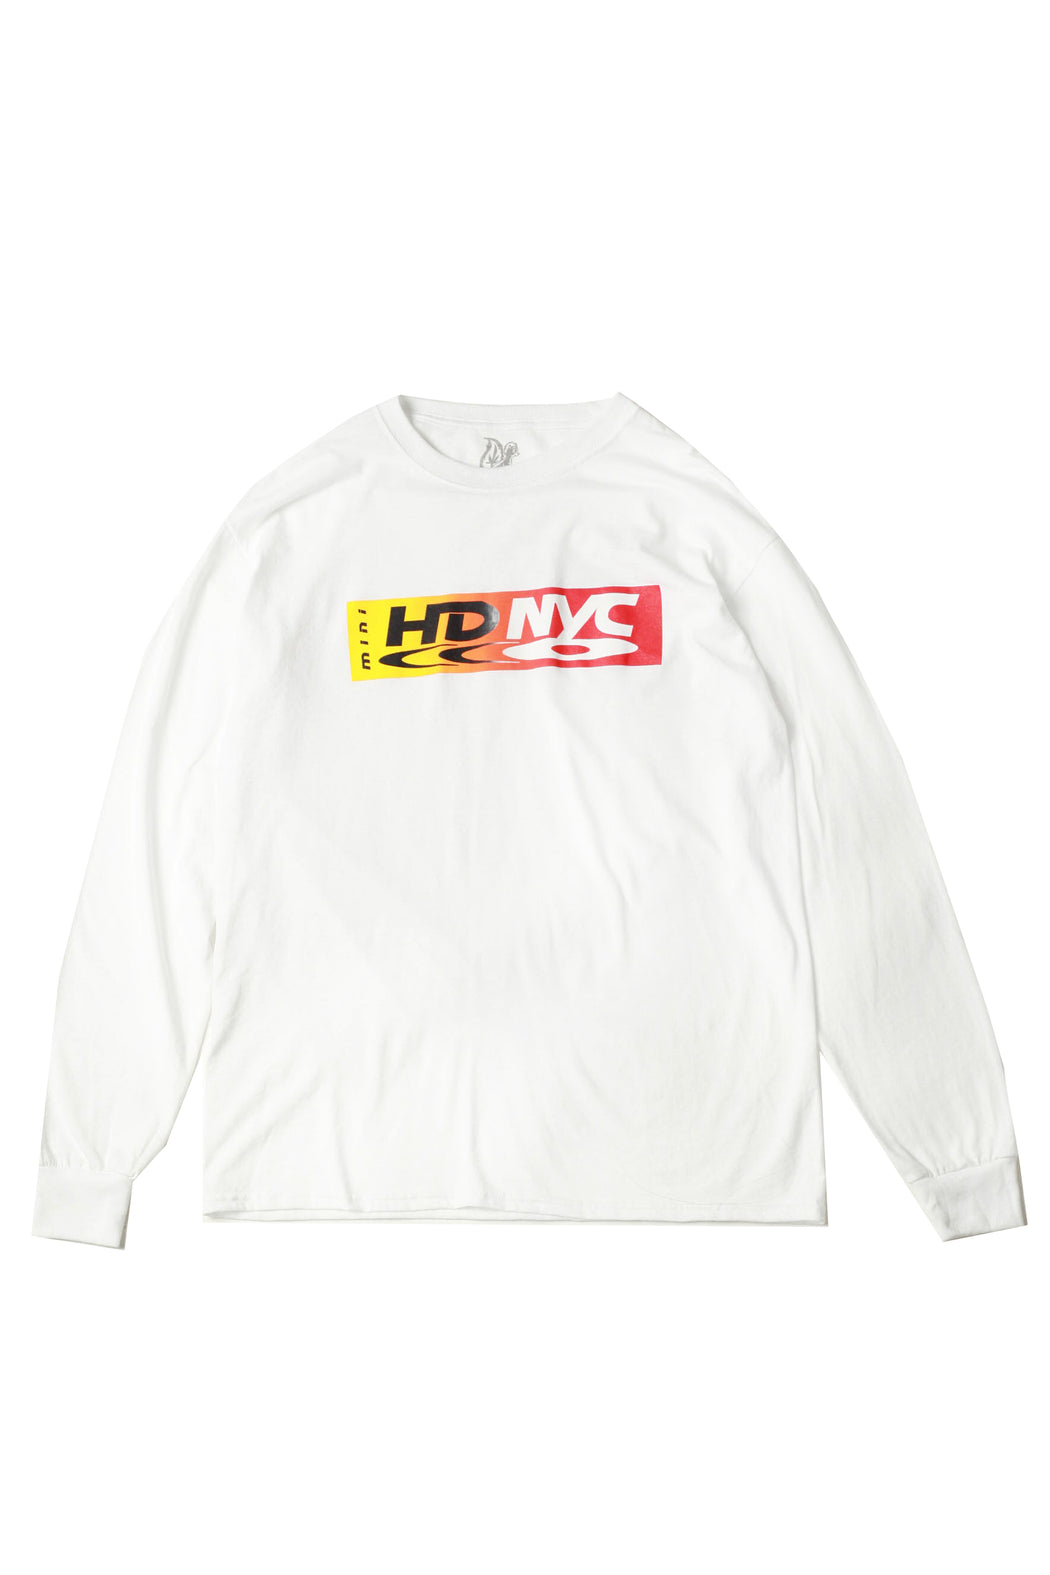 Double Gradient Longsleeve - White